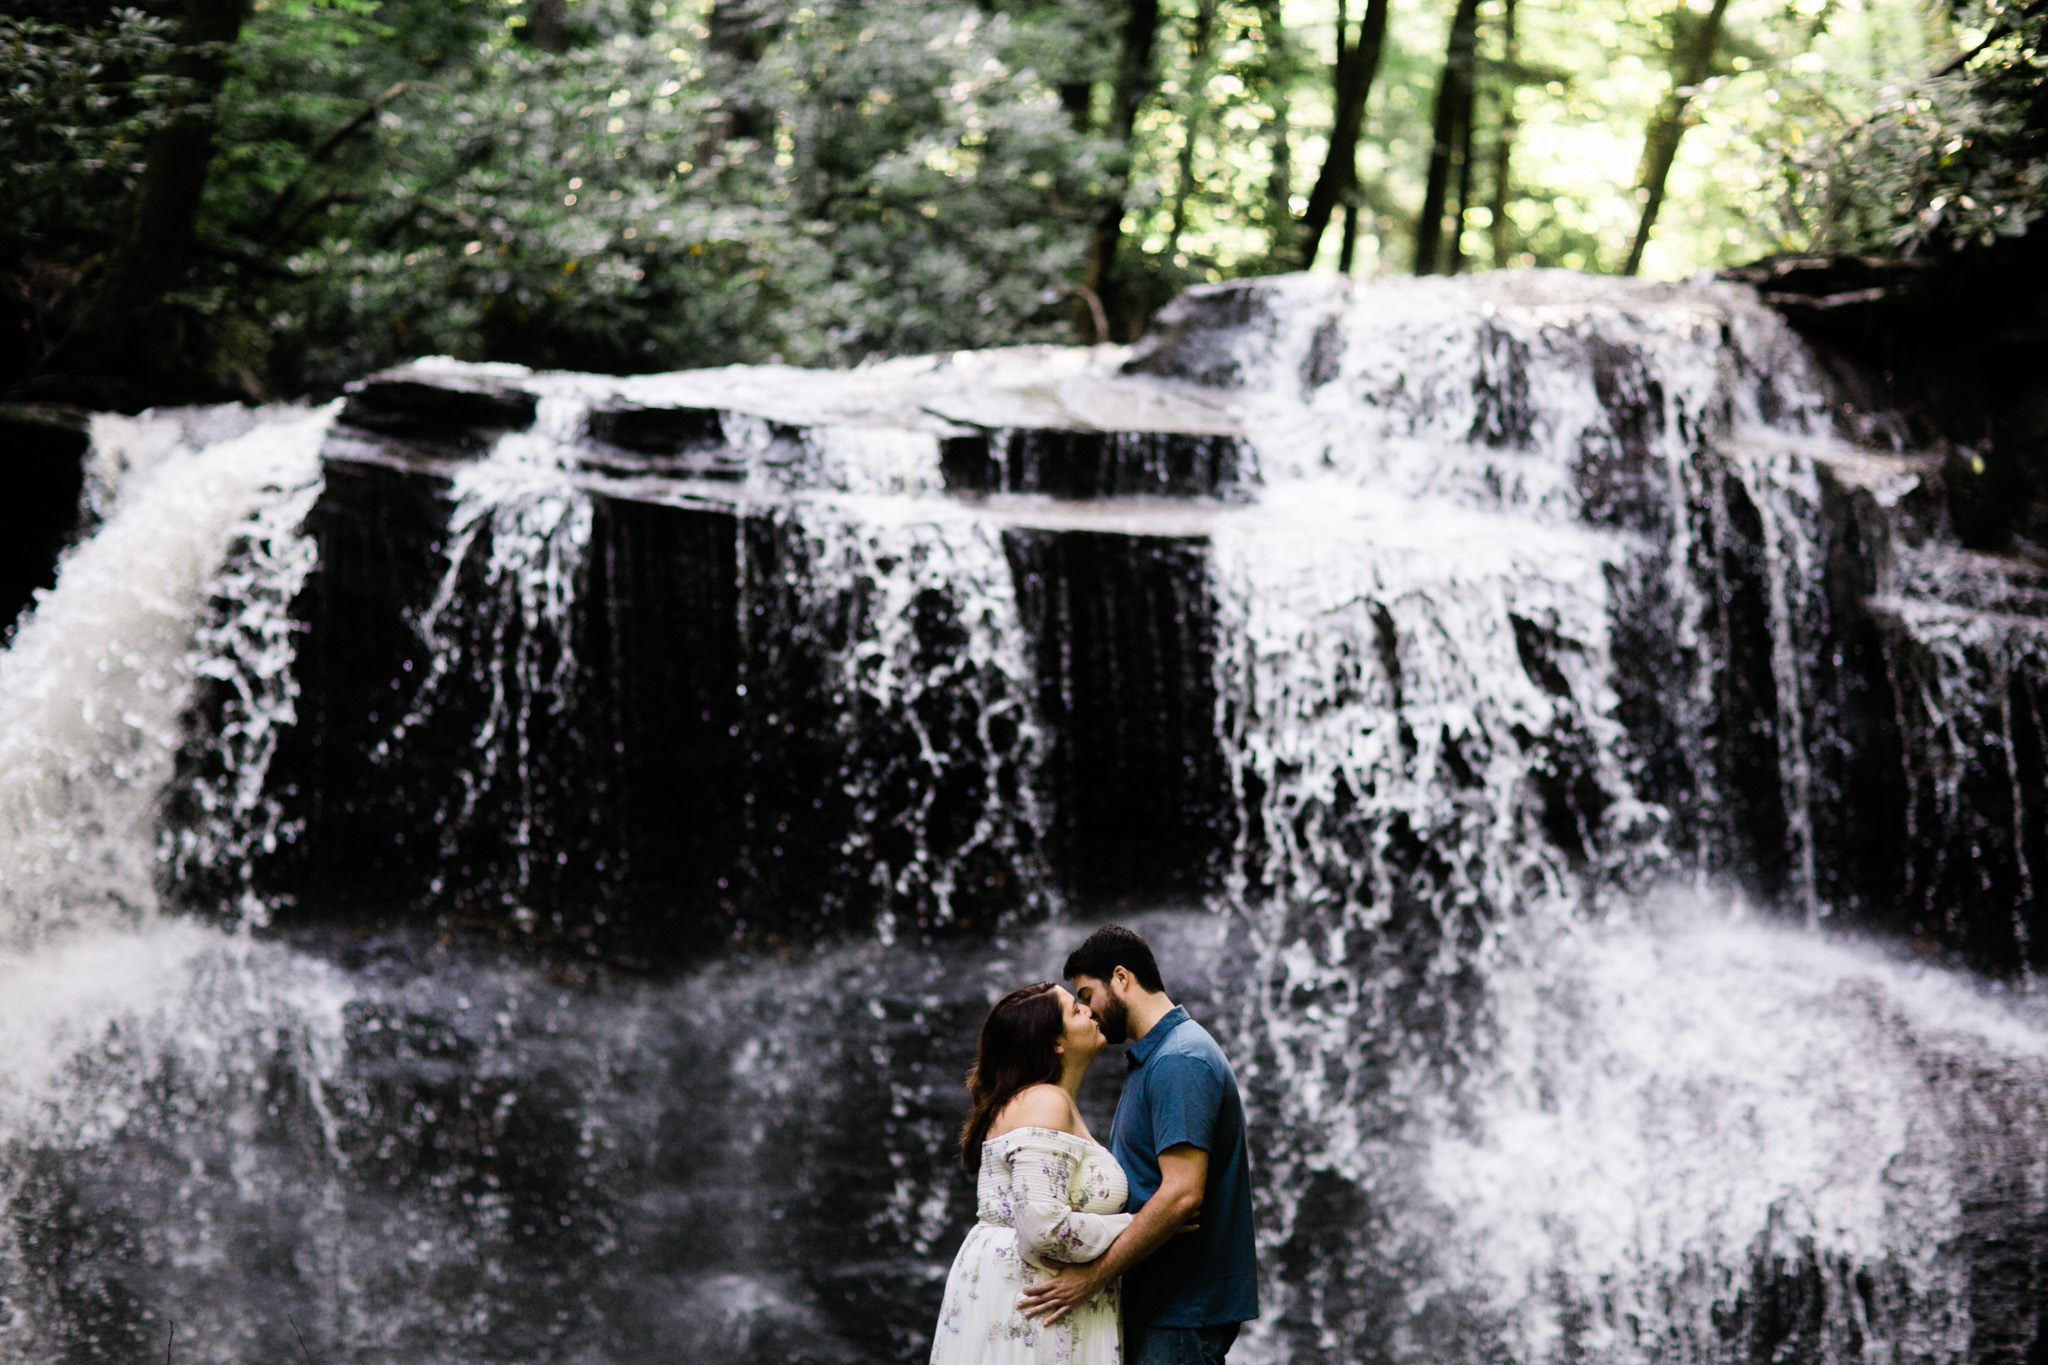 A Holly River adventure engagement session. These two lovebirds are getting married next year at an old estate in central West Virginia, but chose to do their engagement session at Holly River State Park - a place that holds a lot of meaning for them.